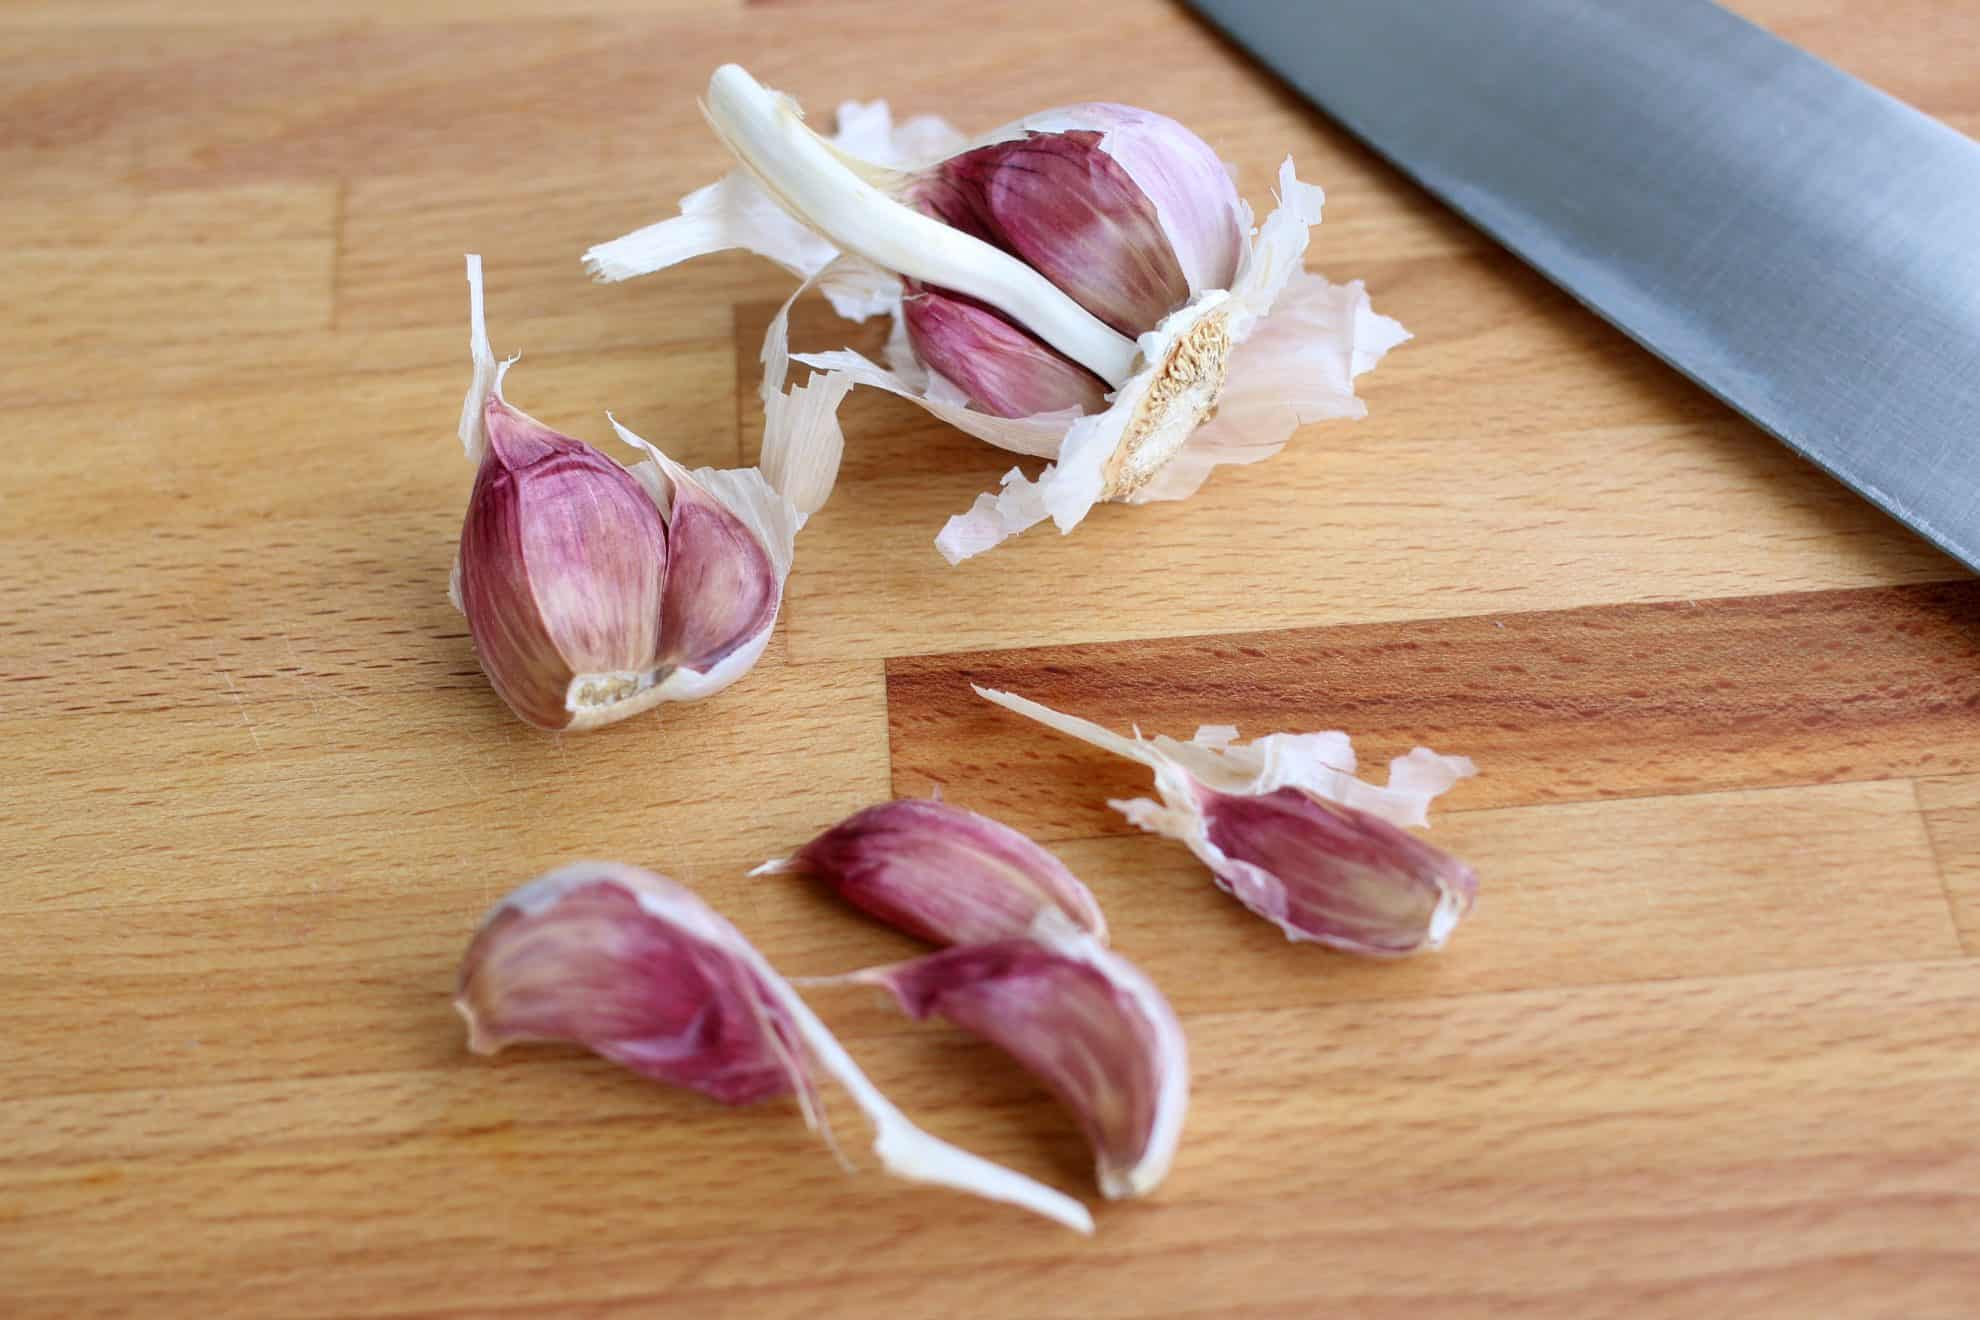 Whole garlic cloves setting on a wooden cutting board alondside a chefs' knife.